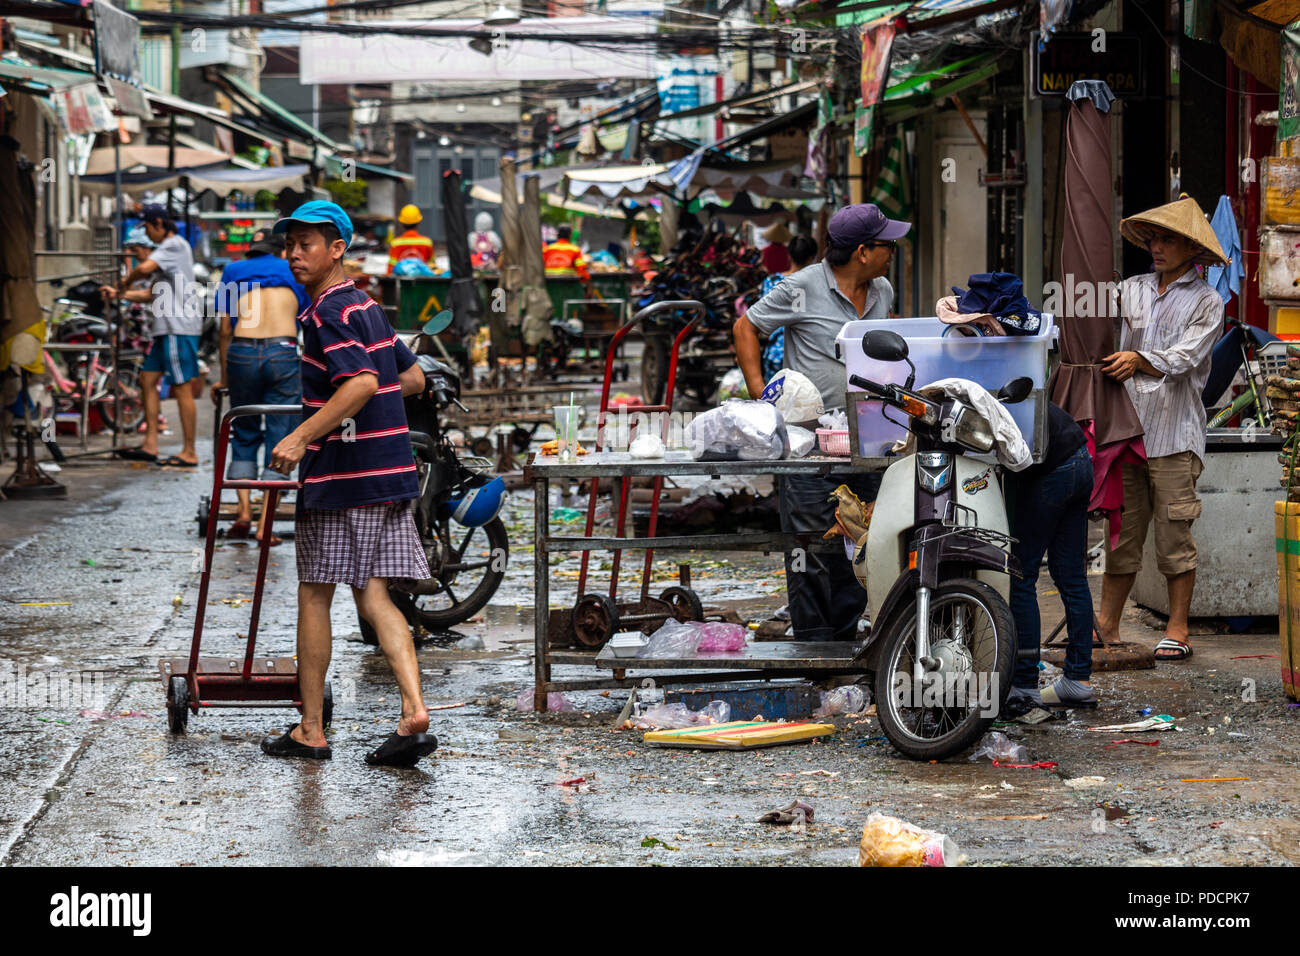 Ho Chi Minh City, Asia - May 12, 2018: Local market being disassembled in central Saigon Stock Photo